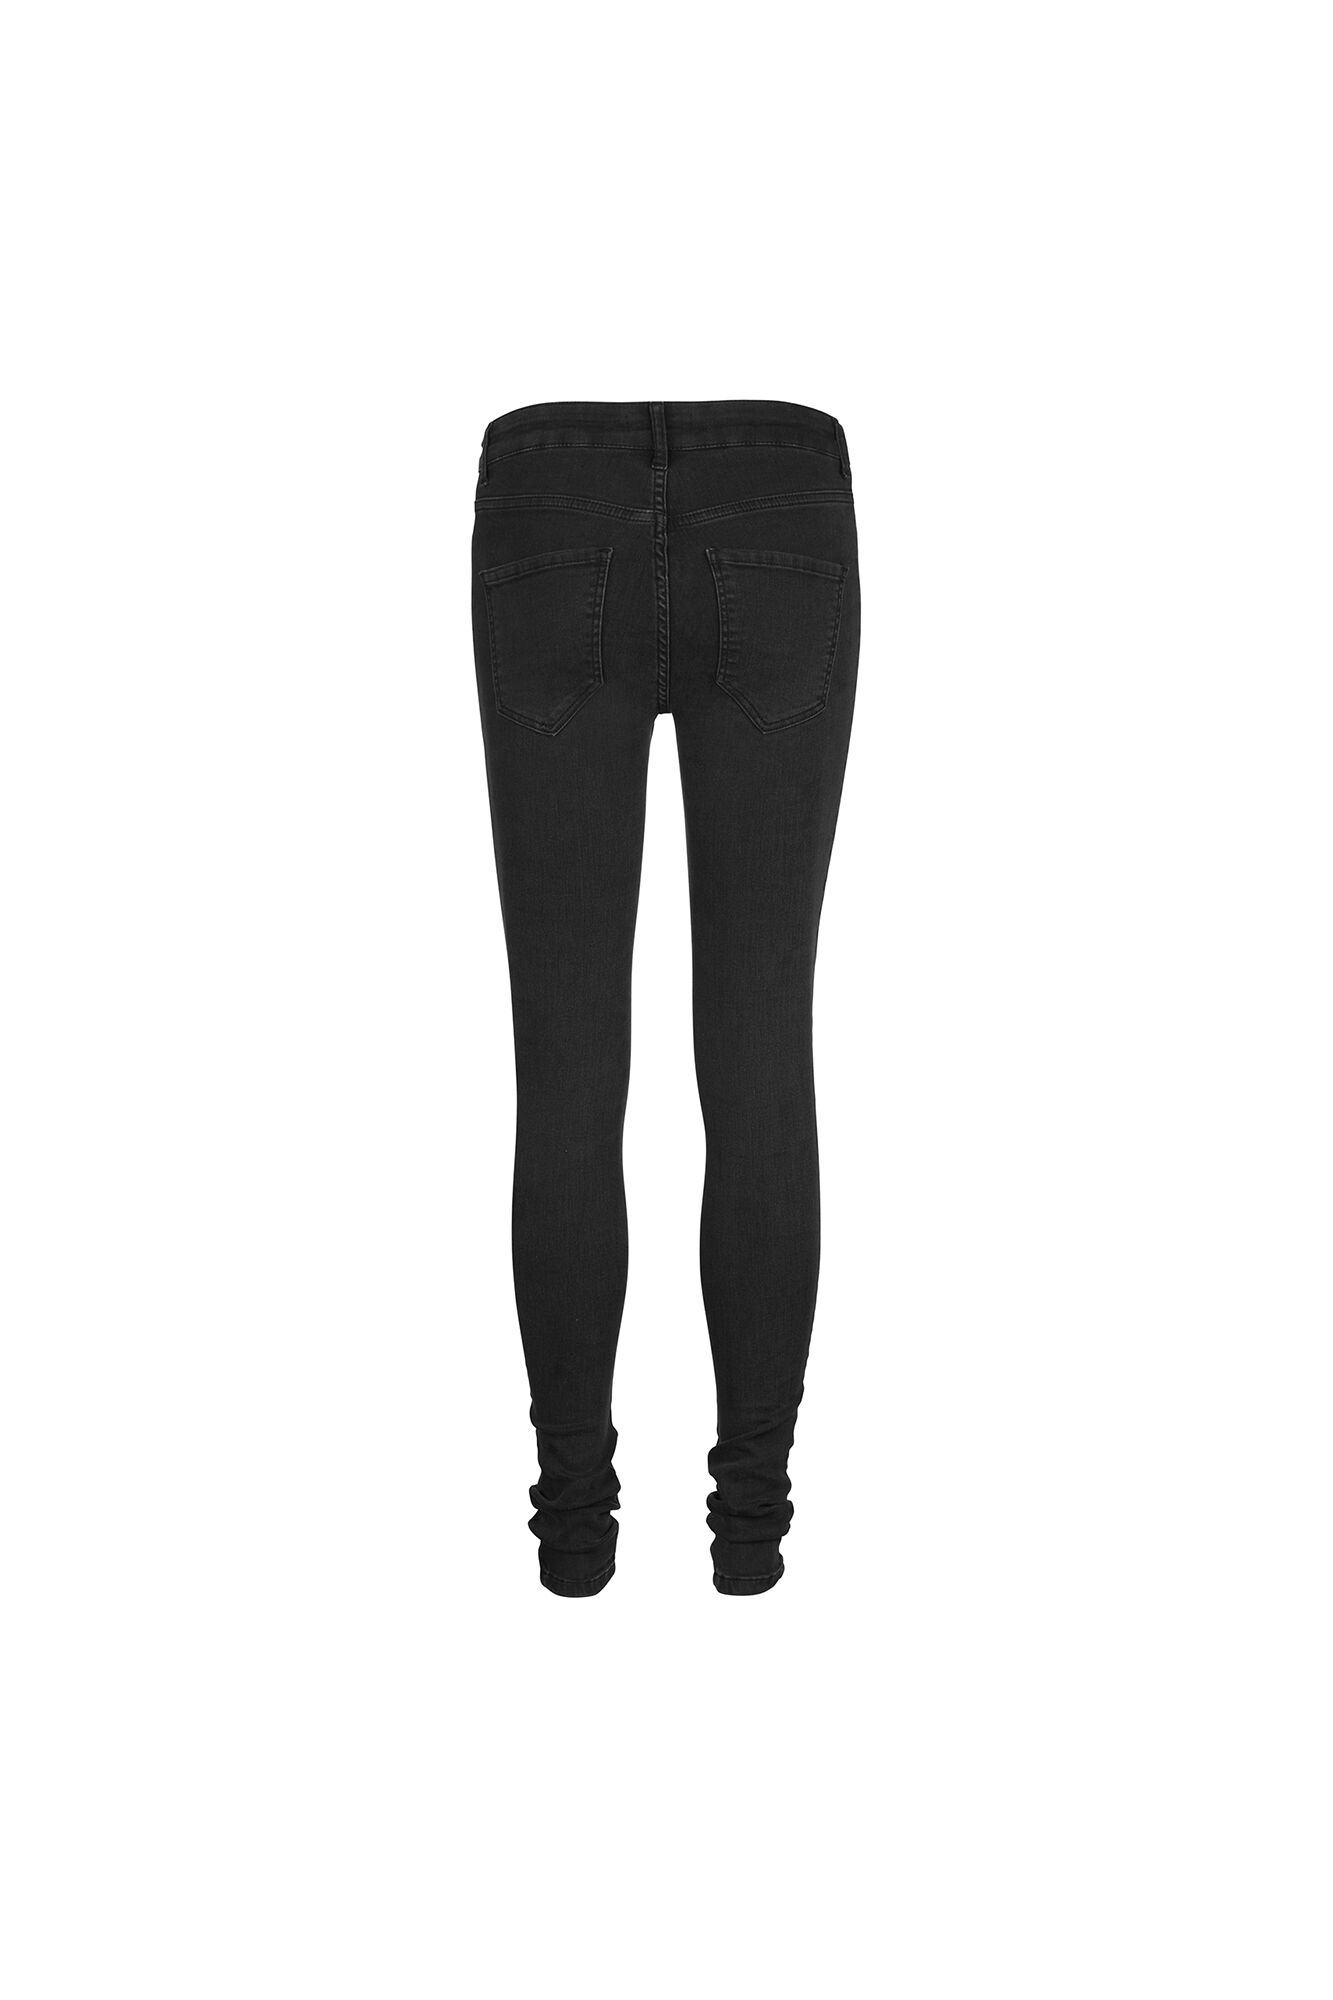 ENBLAKE JEANS WORN BLACK 6292